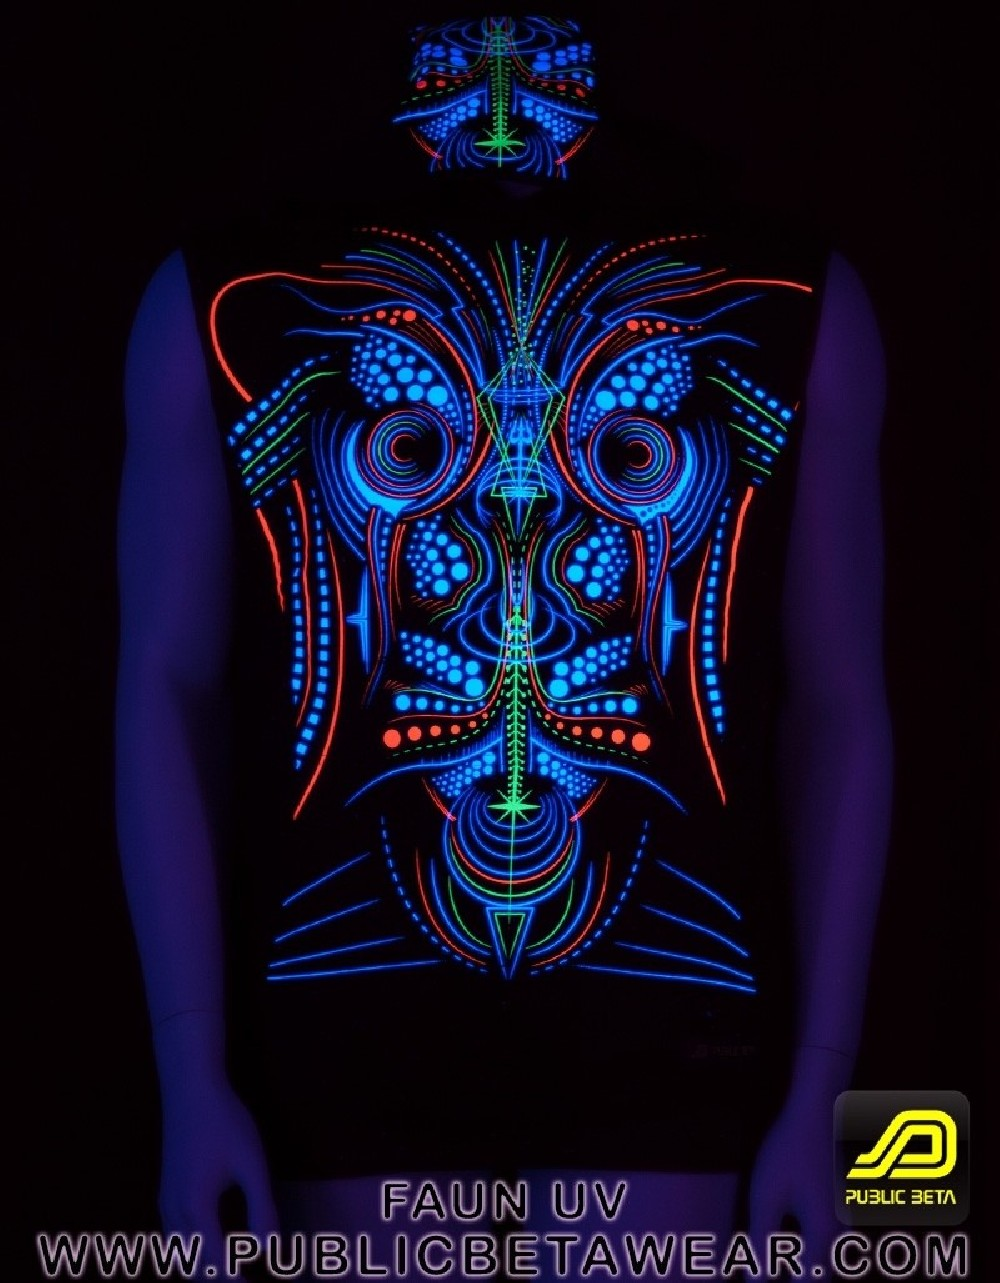 Faun UV D78 Vest /Glow in Blacklight Print